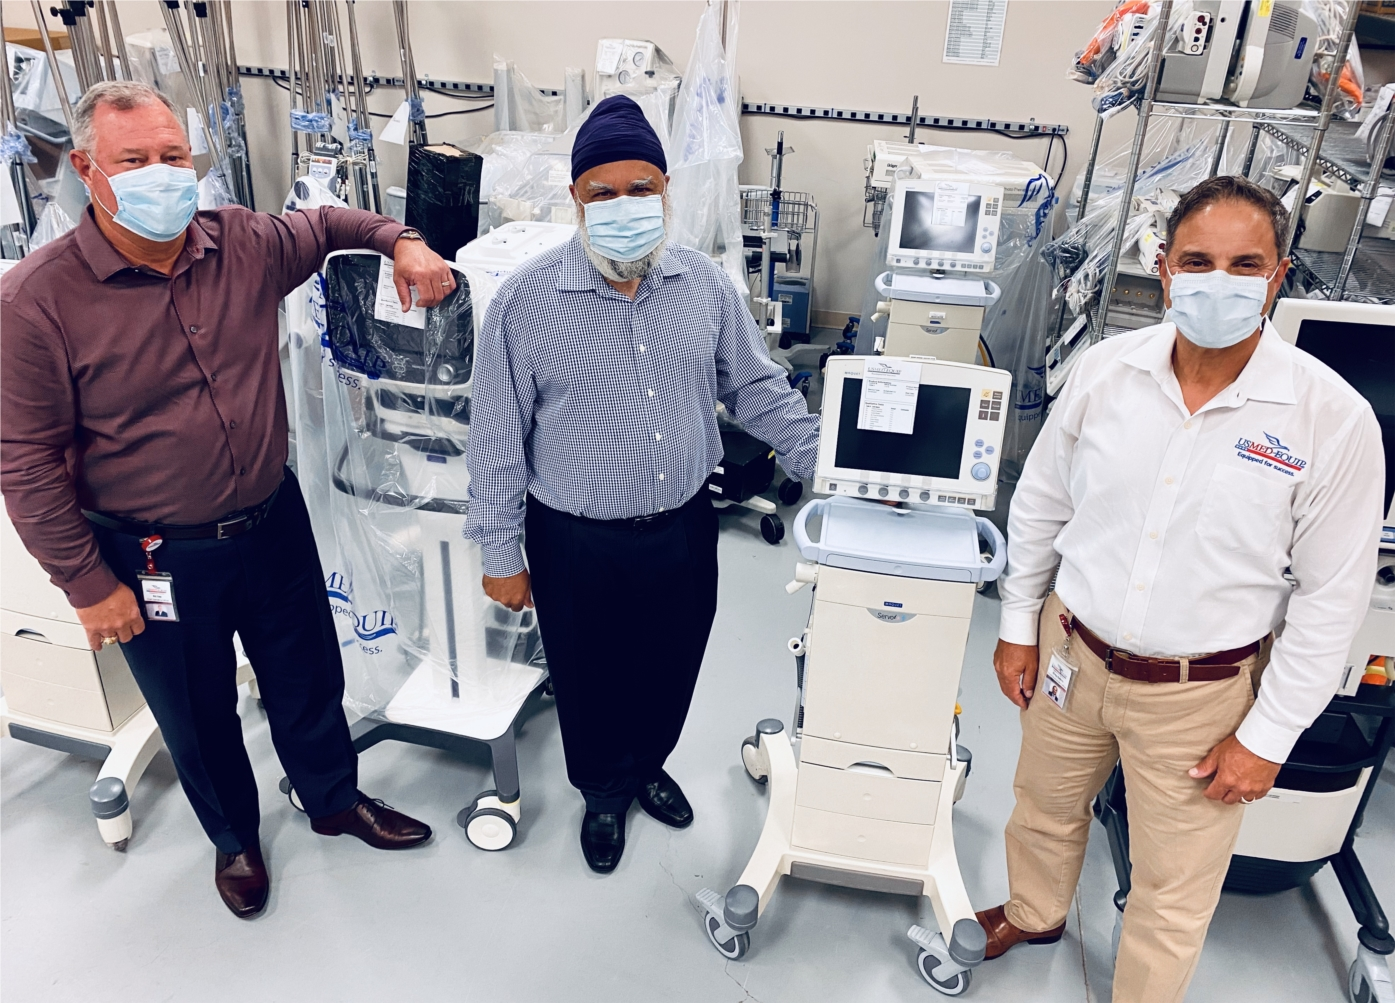 USME Leadership with essential medical equipment ready for shipment to hospital partners during the height of the Covid-19 pandemic.